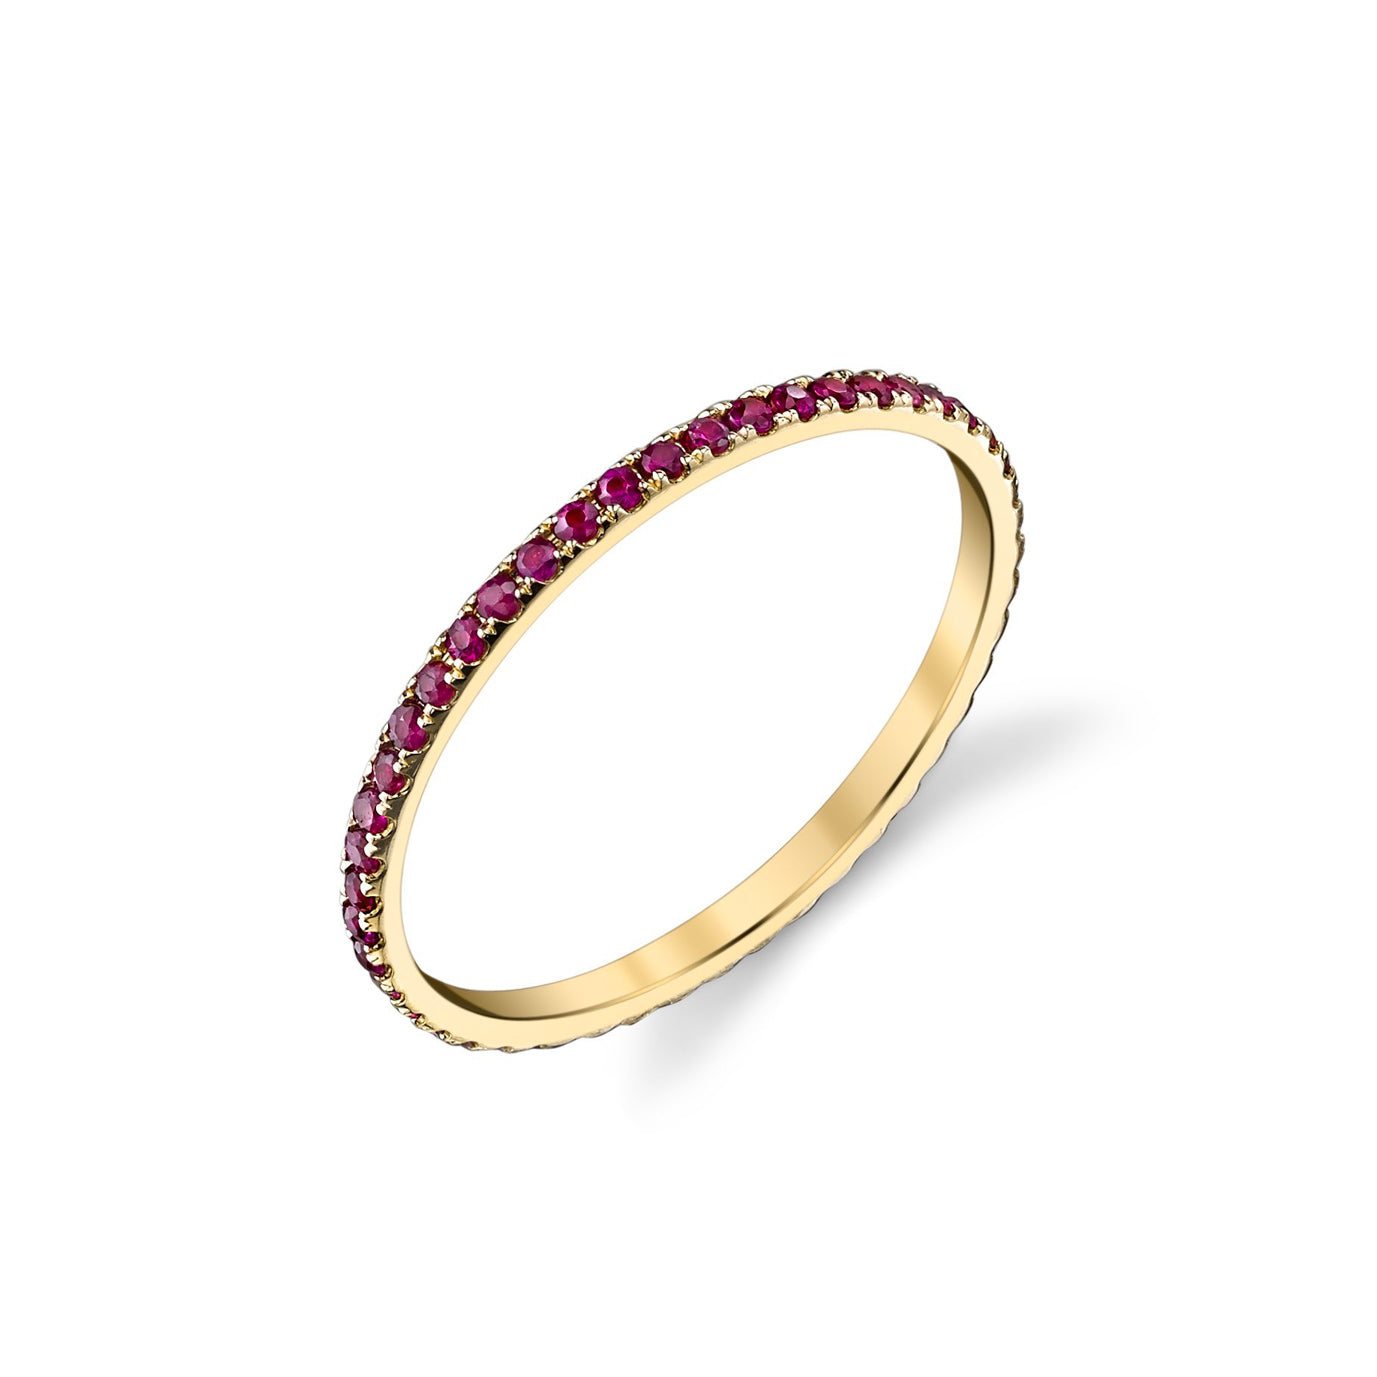 Axis Ring With Rubies